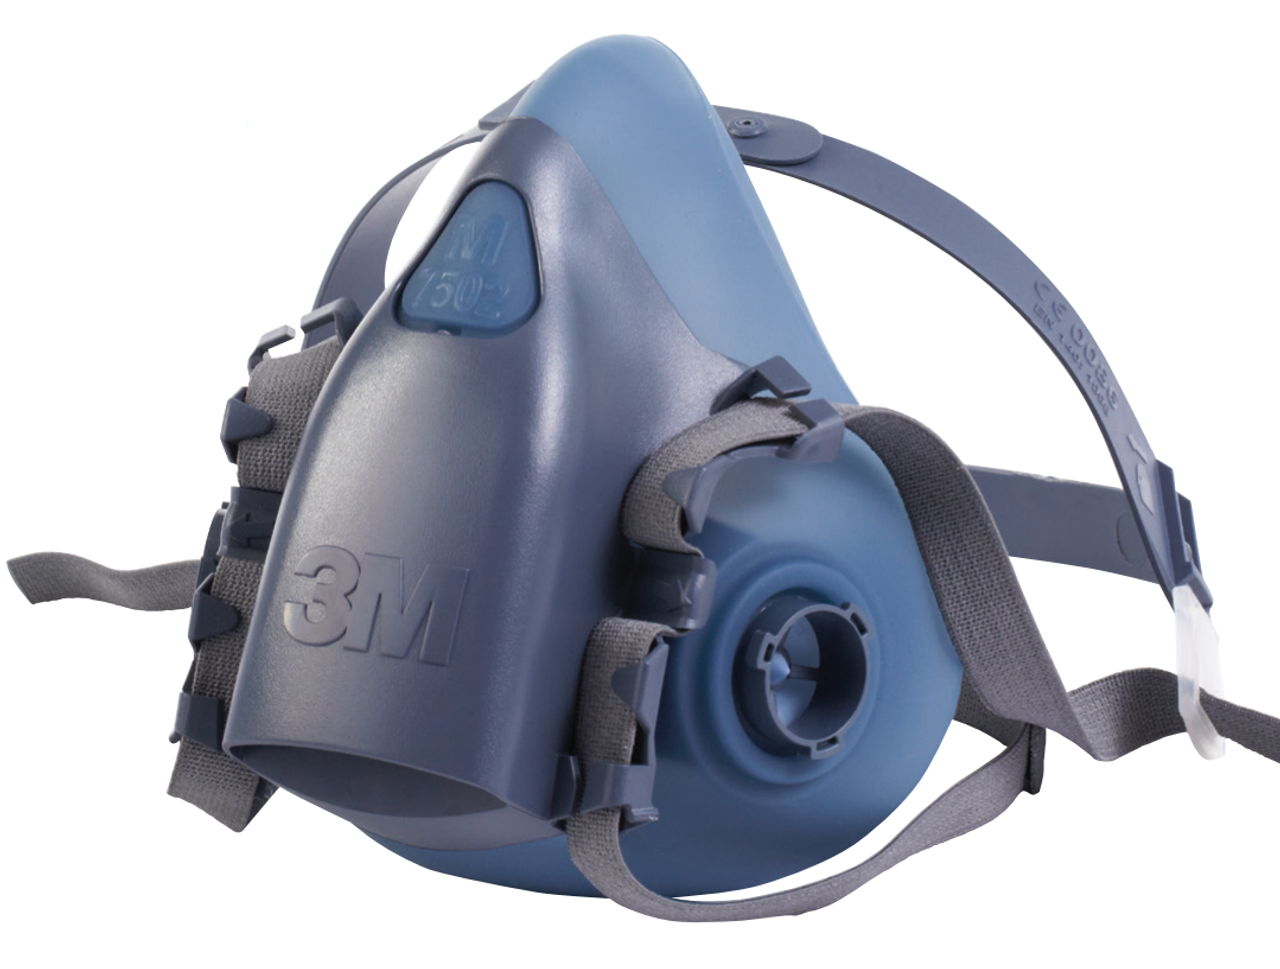 3m 7500 series half mask respirator small